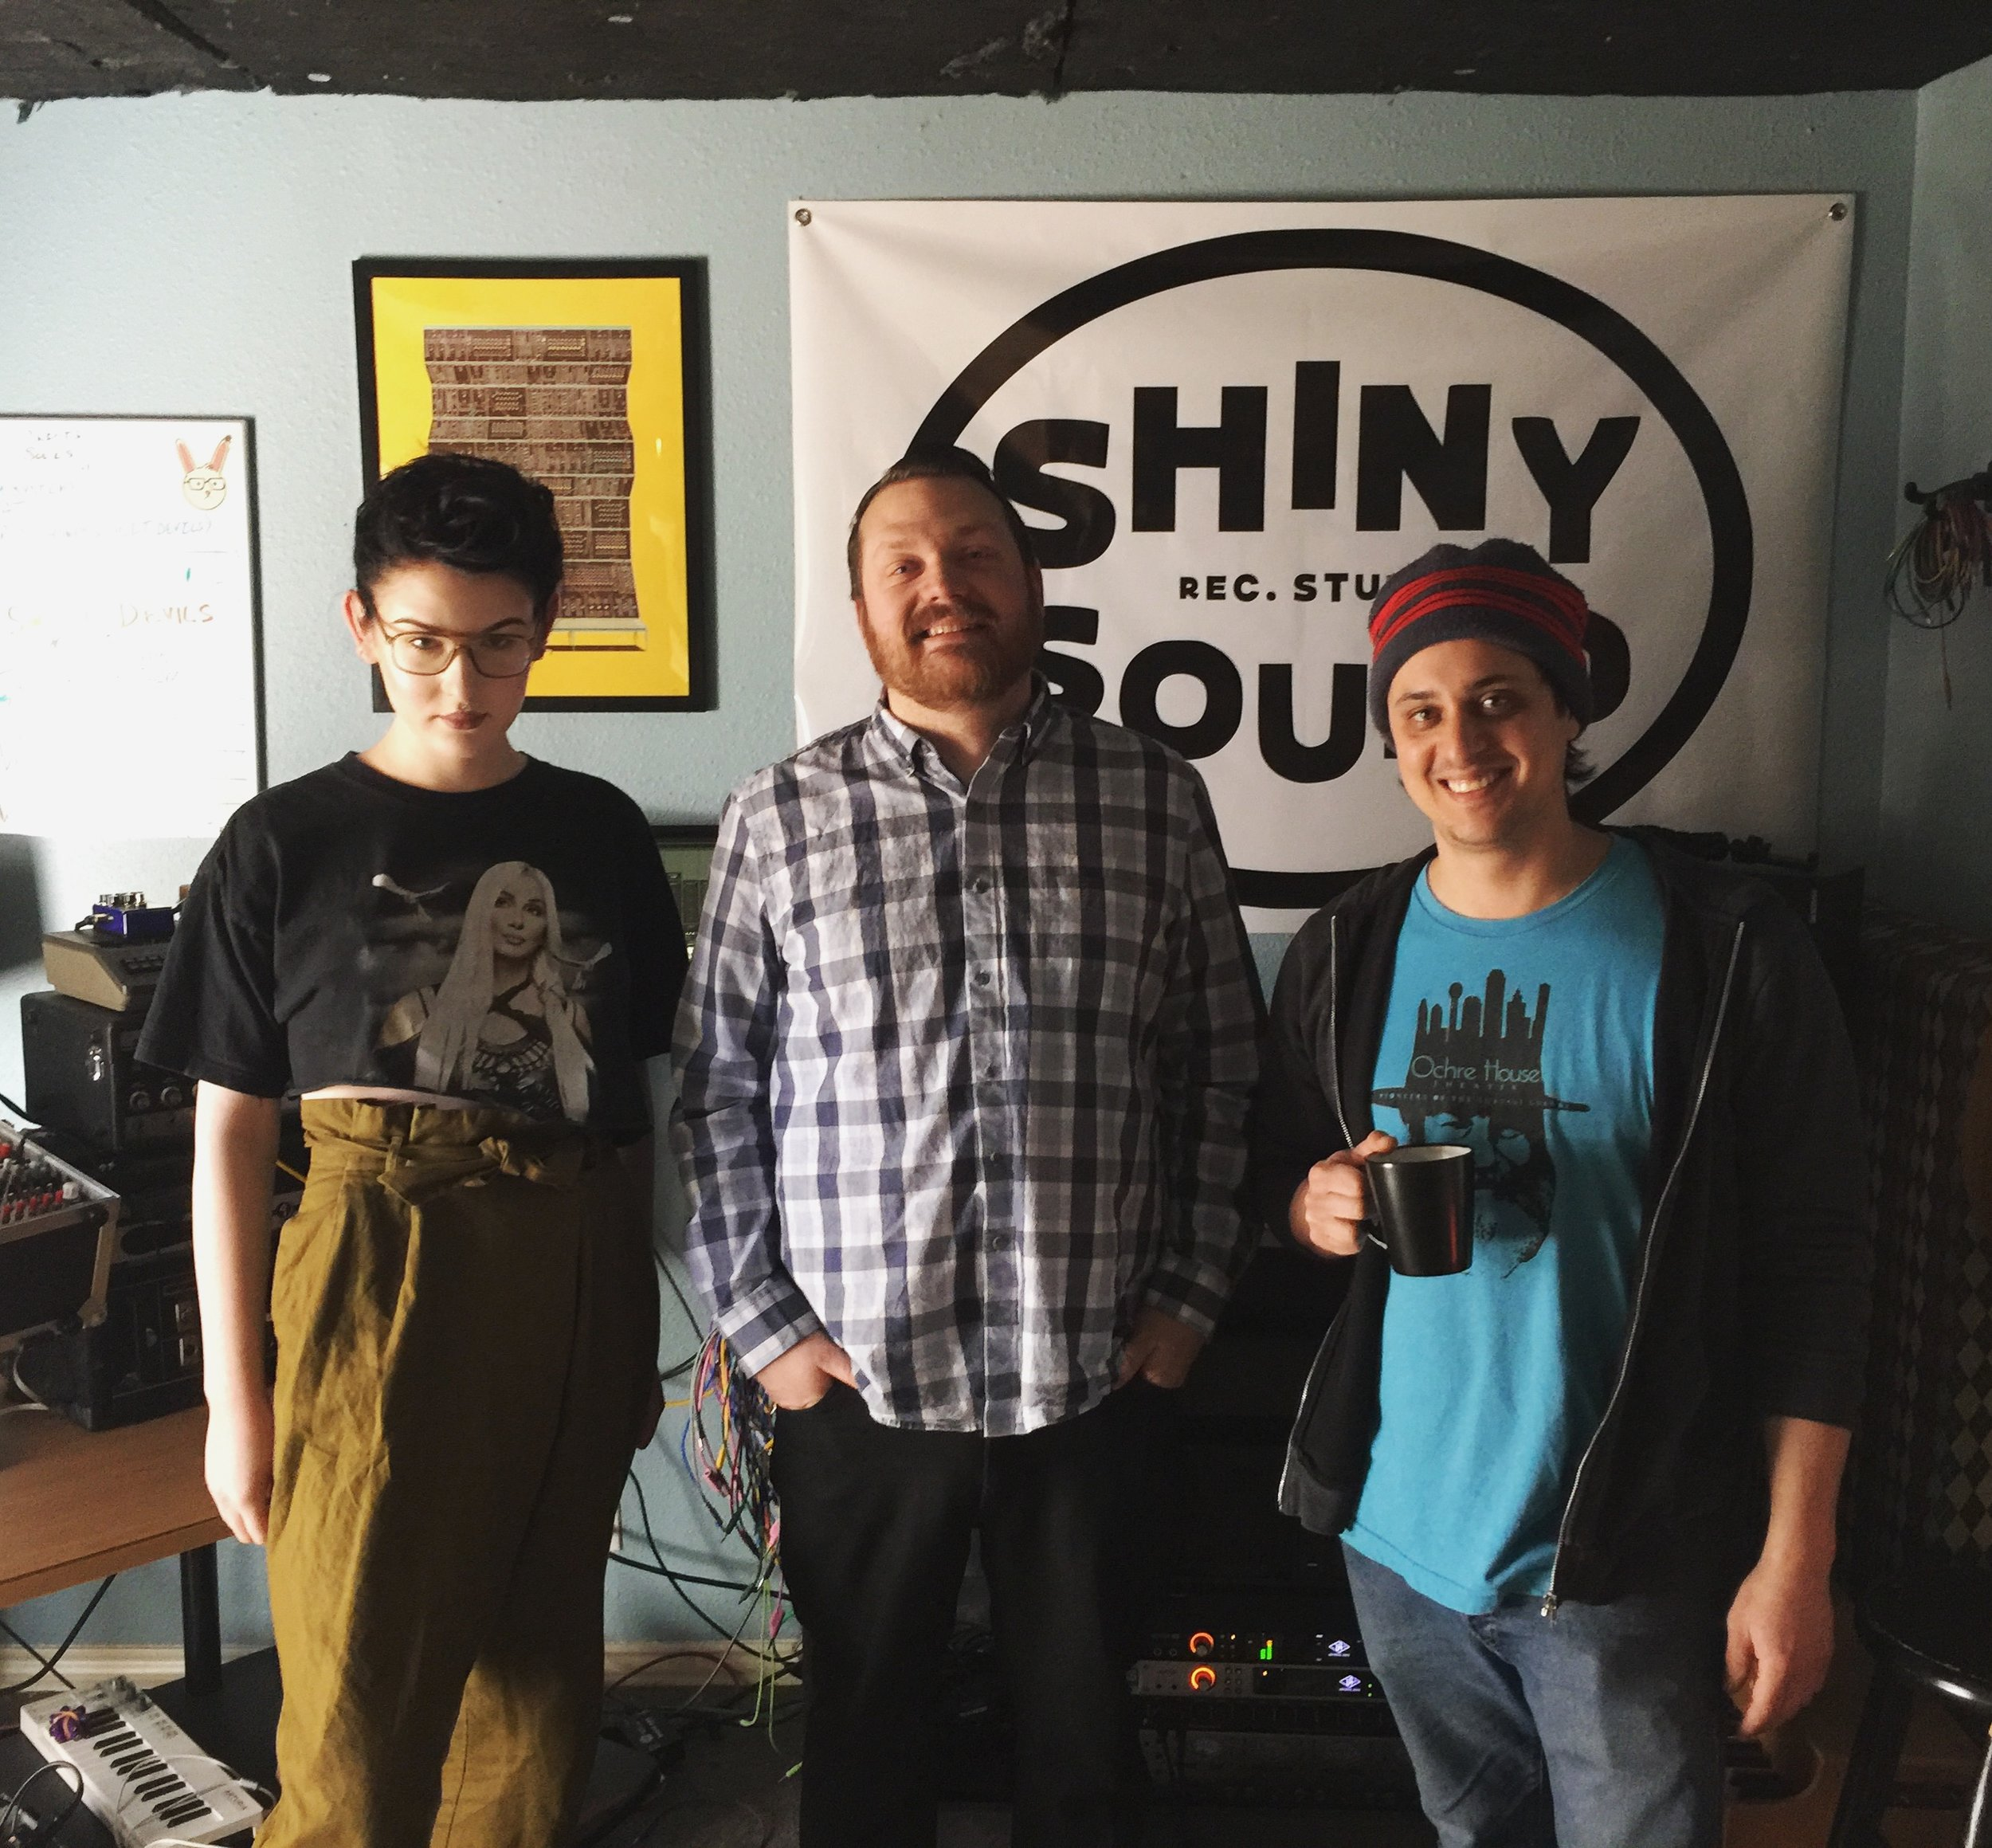 Lorelei K, Corbin Childs, and Jacob Greenan at Shiny Sound Recording Studio